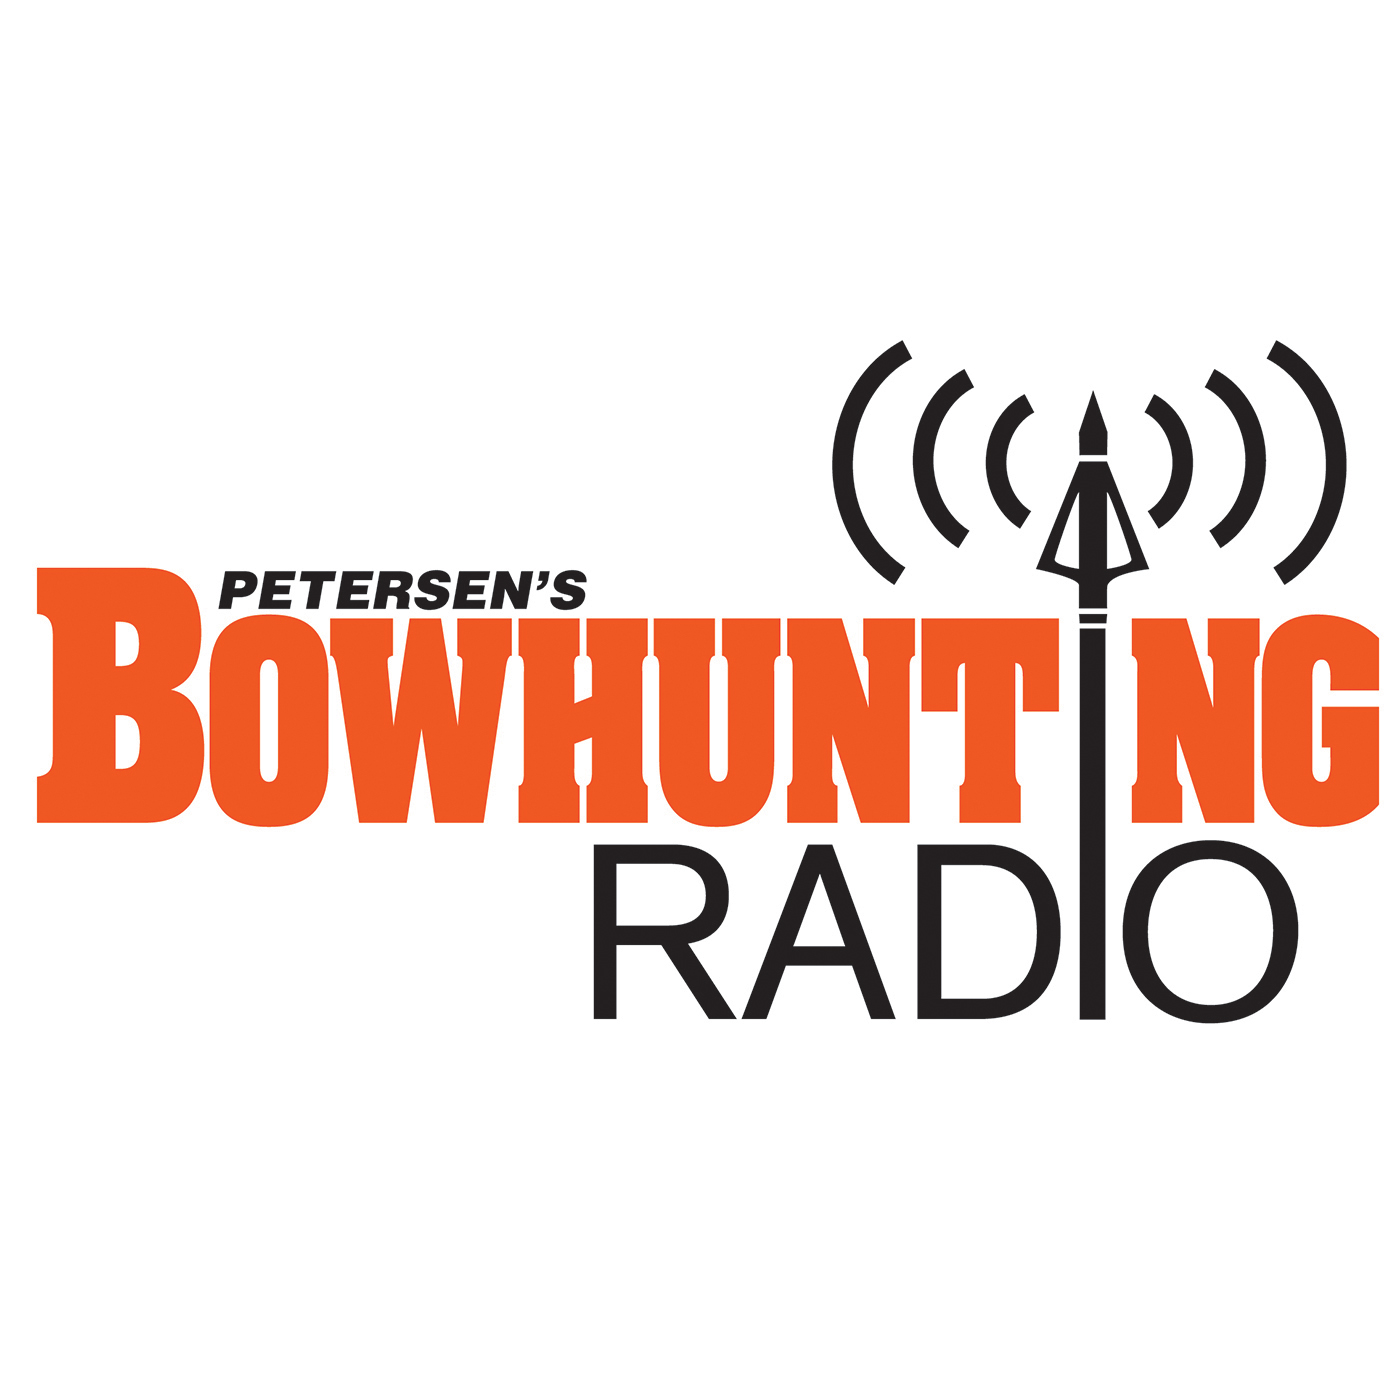 Petersen's Bowhunting Radio